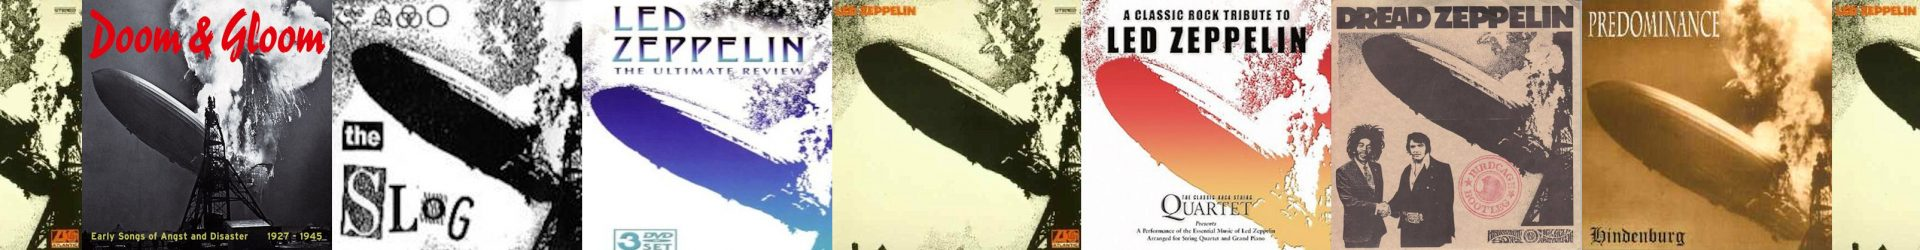 LED ZEPPELIN: Bring It on Home – SONNY BOY WILLIAMSON: Bring It on Home